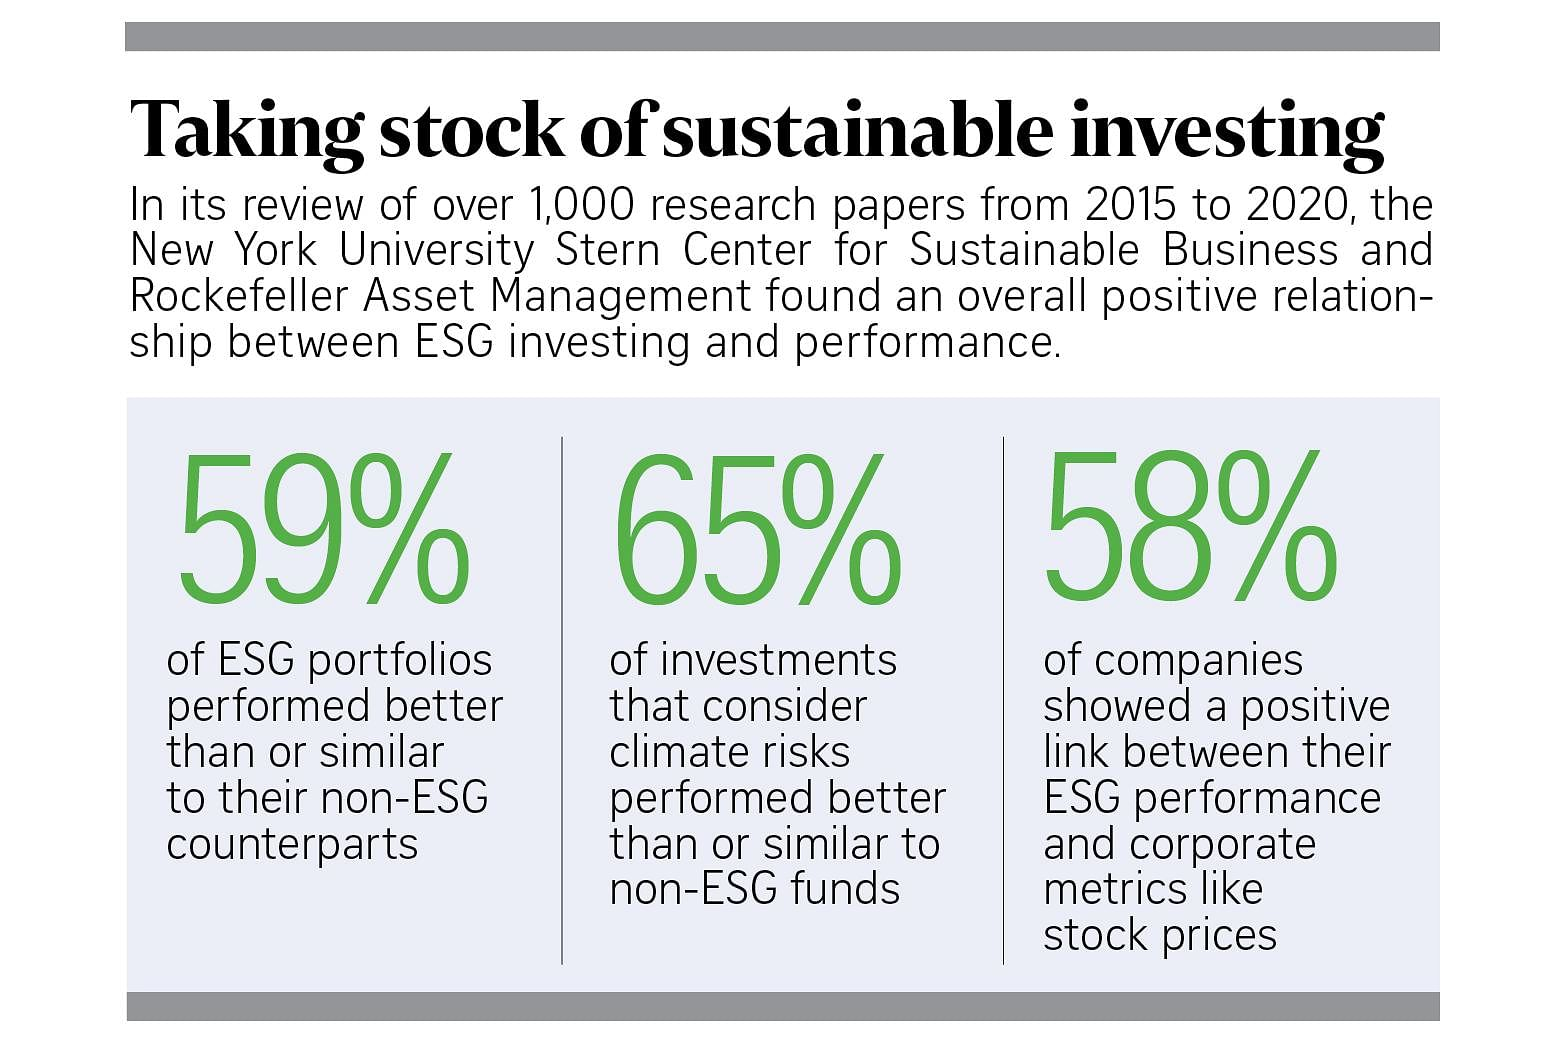 Statistics show a positive relationship between ESG investing and performance